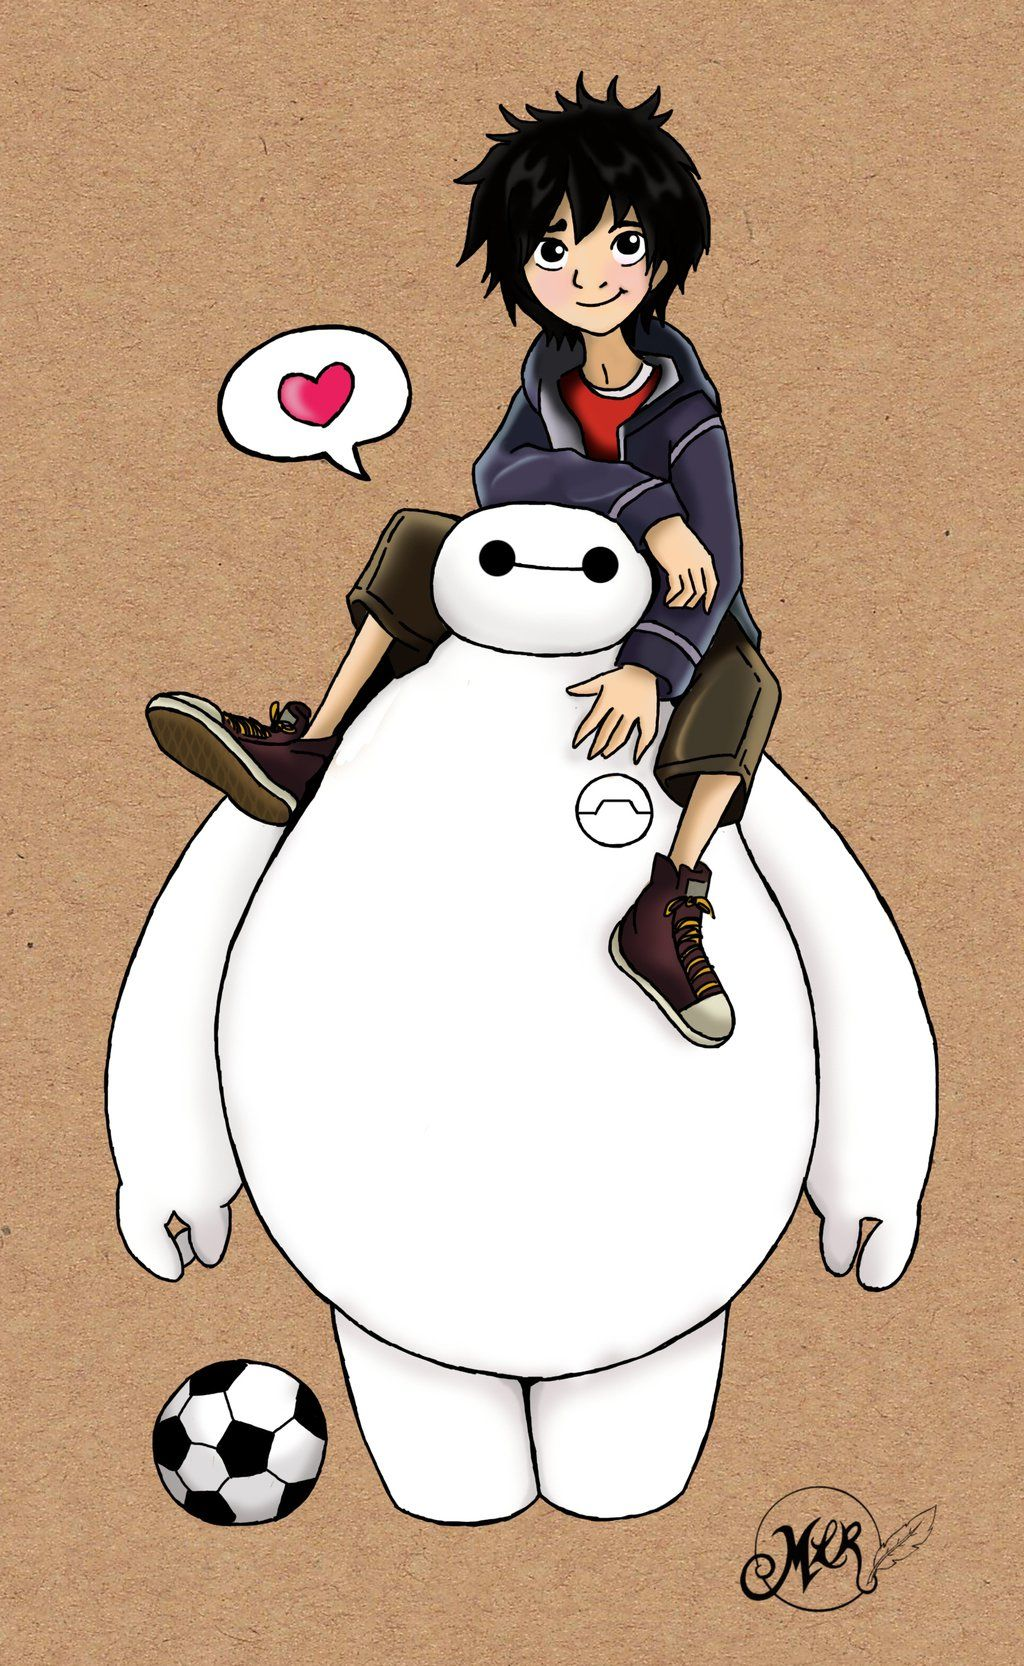 Baymax And Hiro By Mlatimerridleydeviantartcom On DeviantArt - Baymax imagined famous disney characters